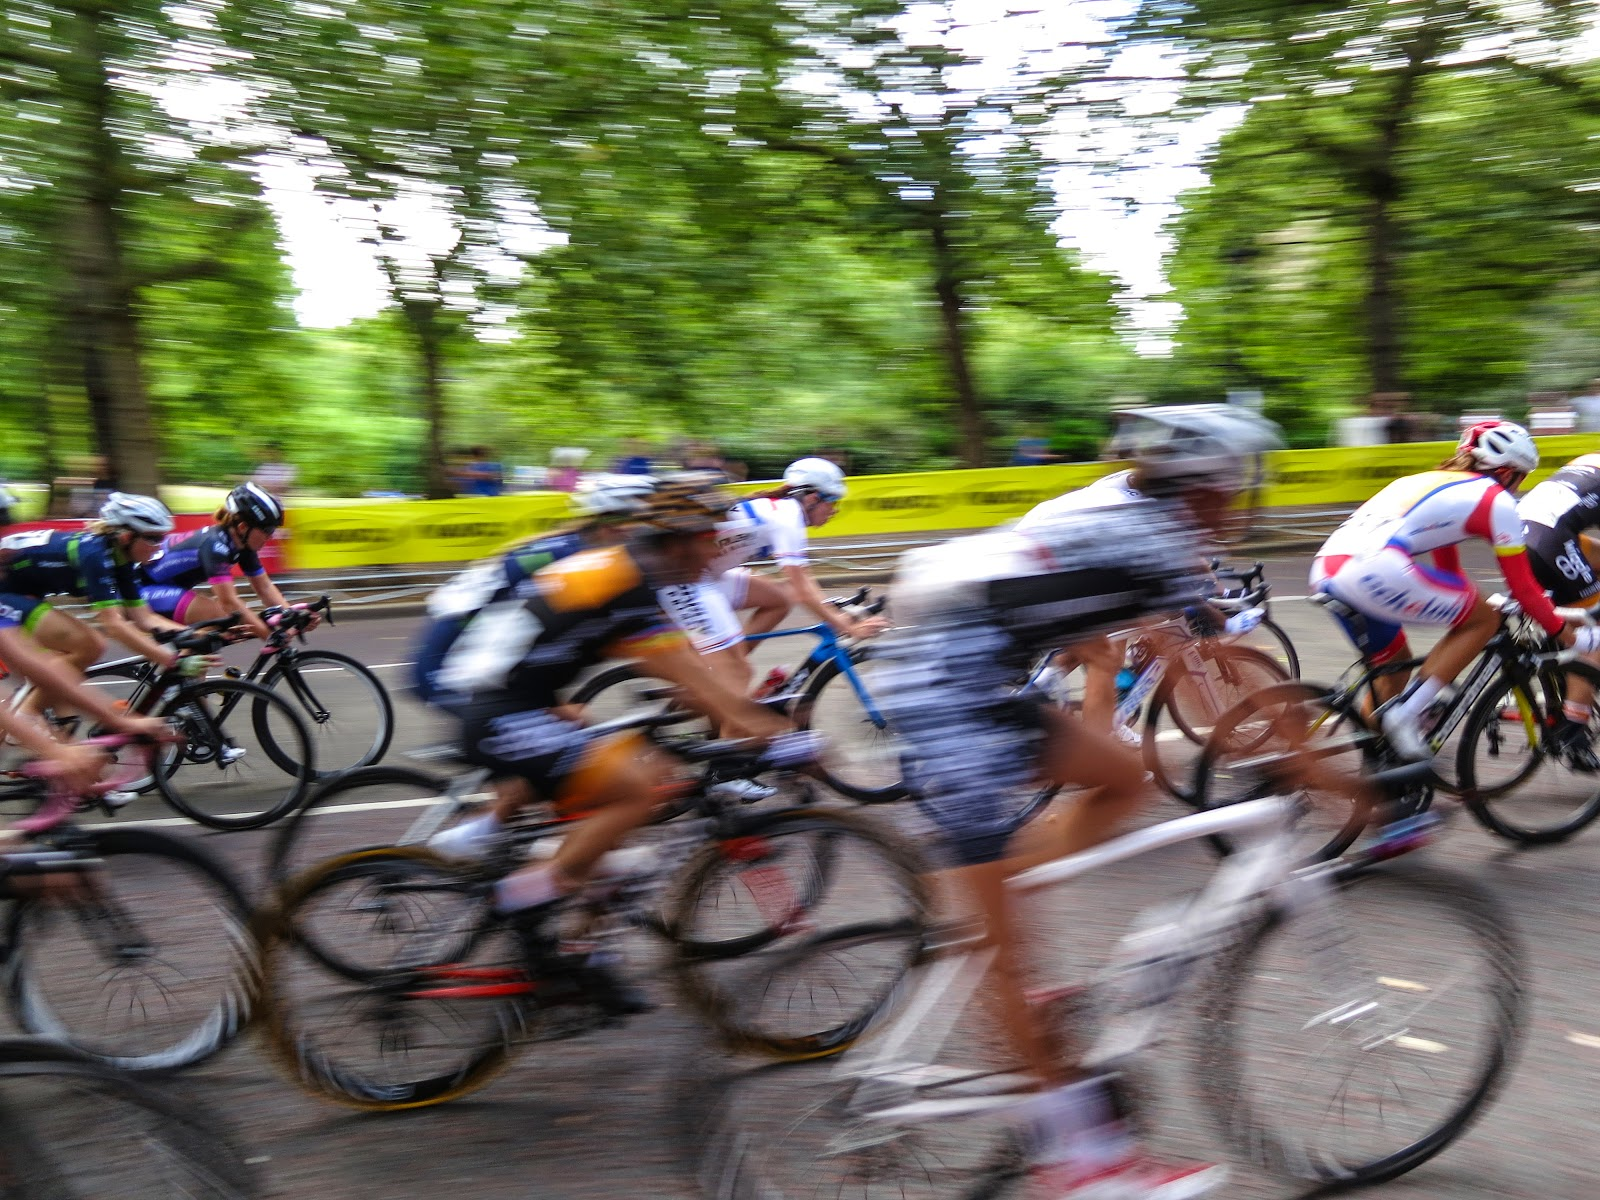 Competitive cyclists race down street